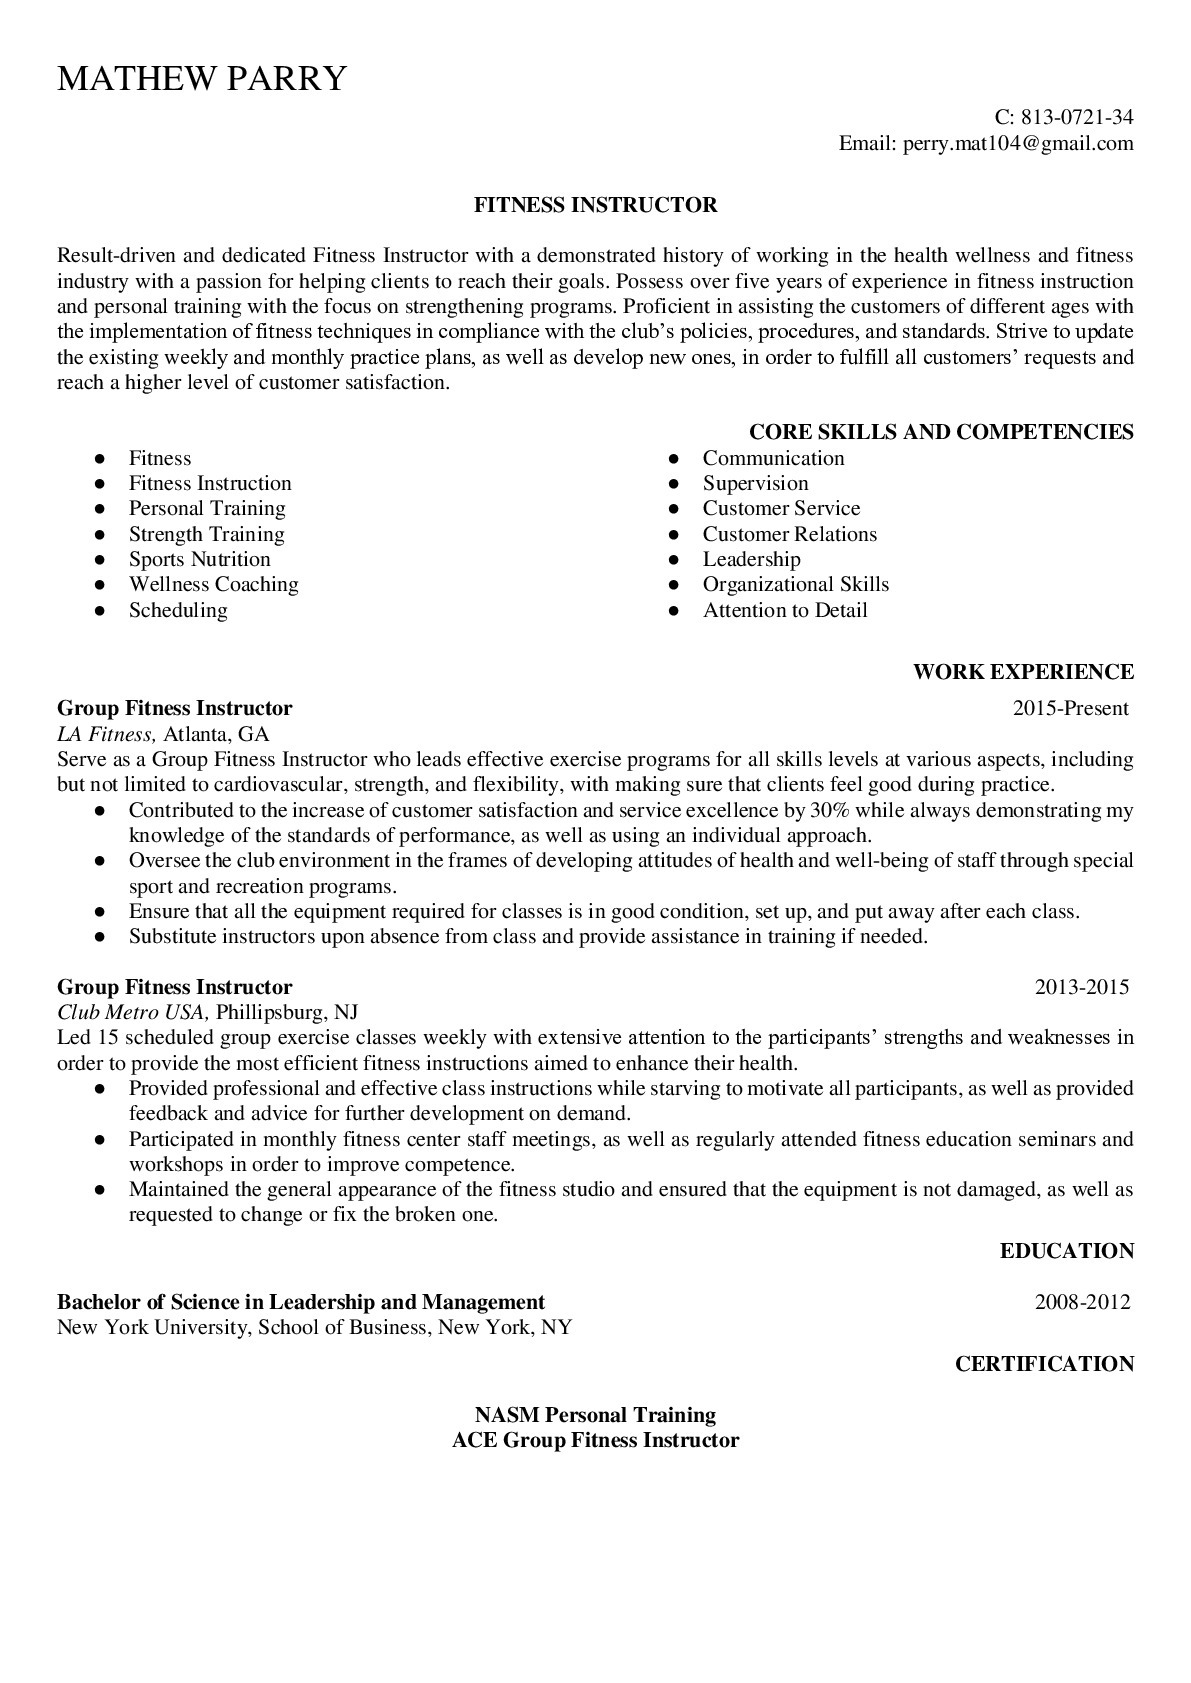 Resume Example for Fitness Instructor